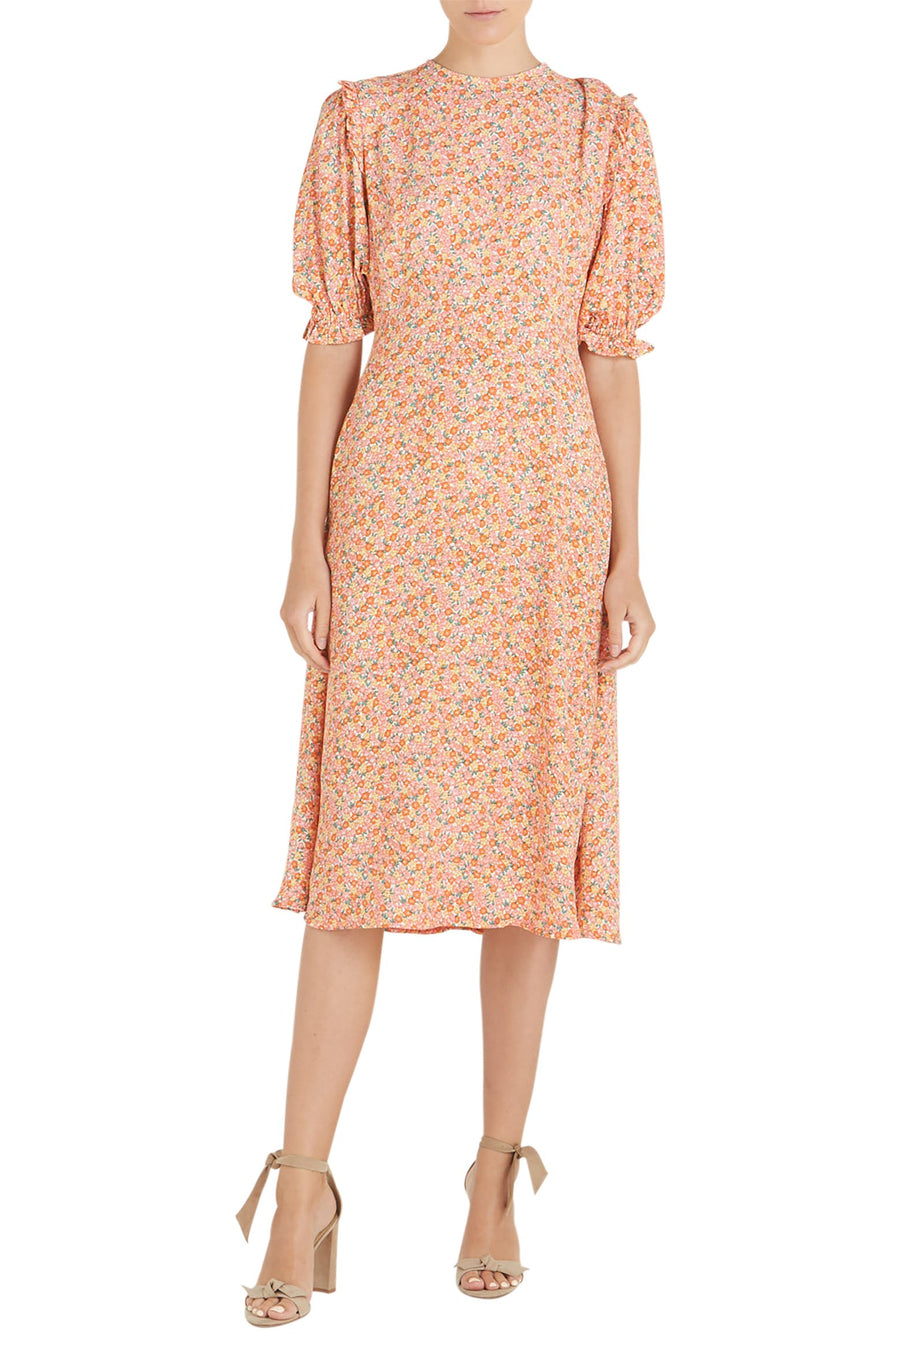 Faithfull The Brand Jean-Marie Midi Dress in Mathiola Floral Print-Pink from The New Trend